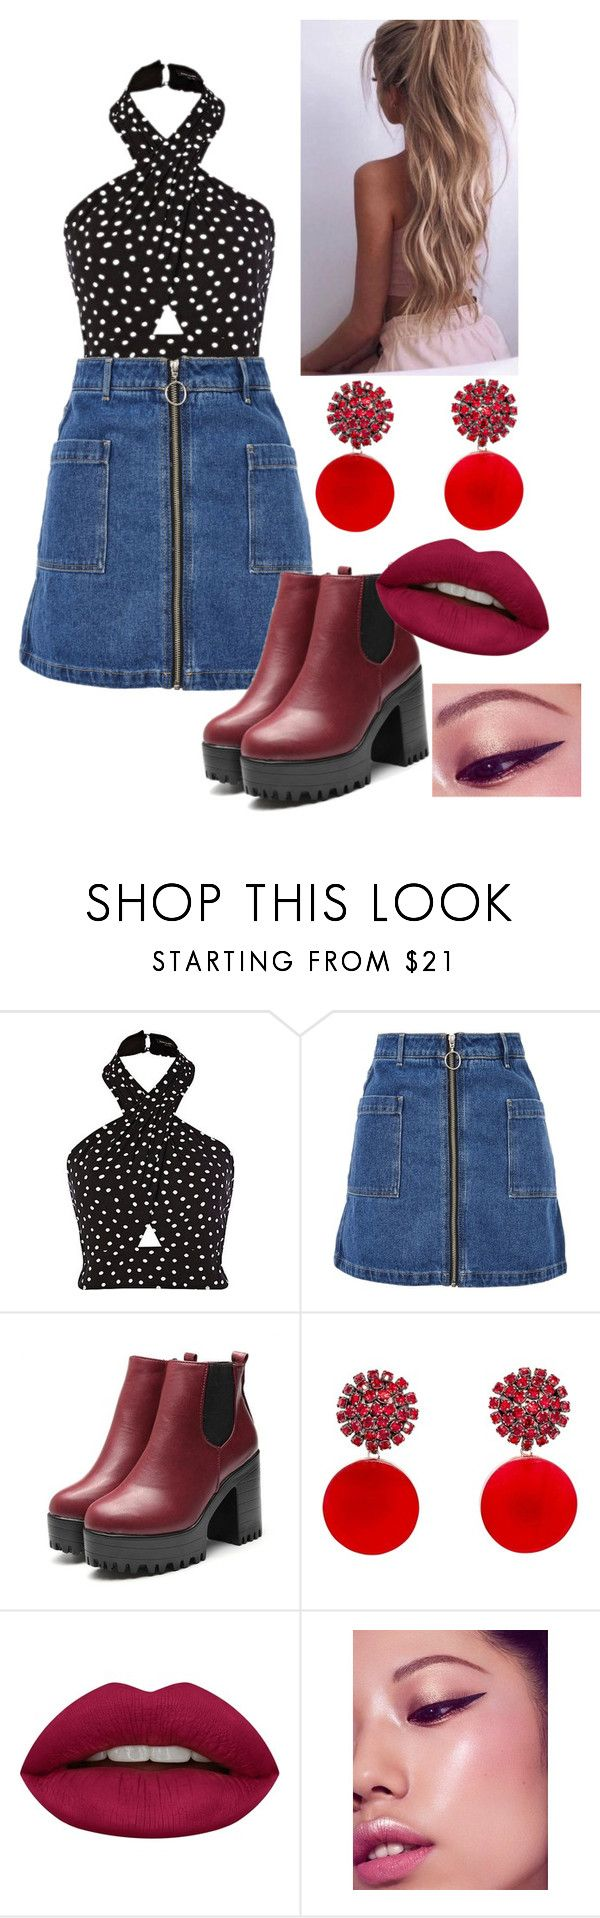 """""""Mila"""" by judehassan on Polyvore featuring Topshop, Marni and Huda Beauty"""